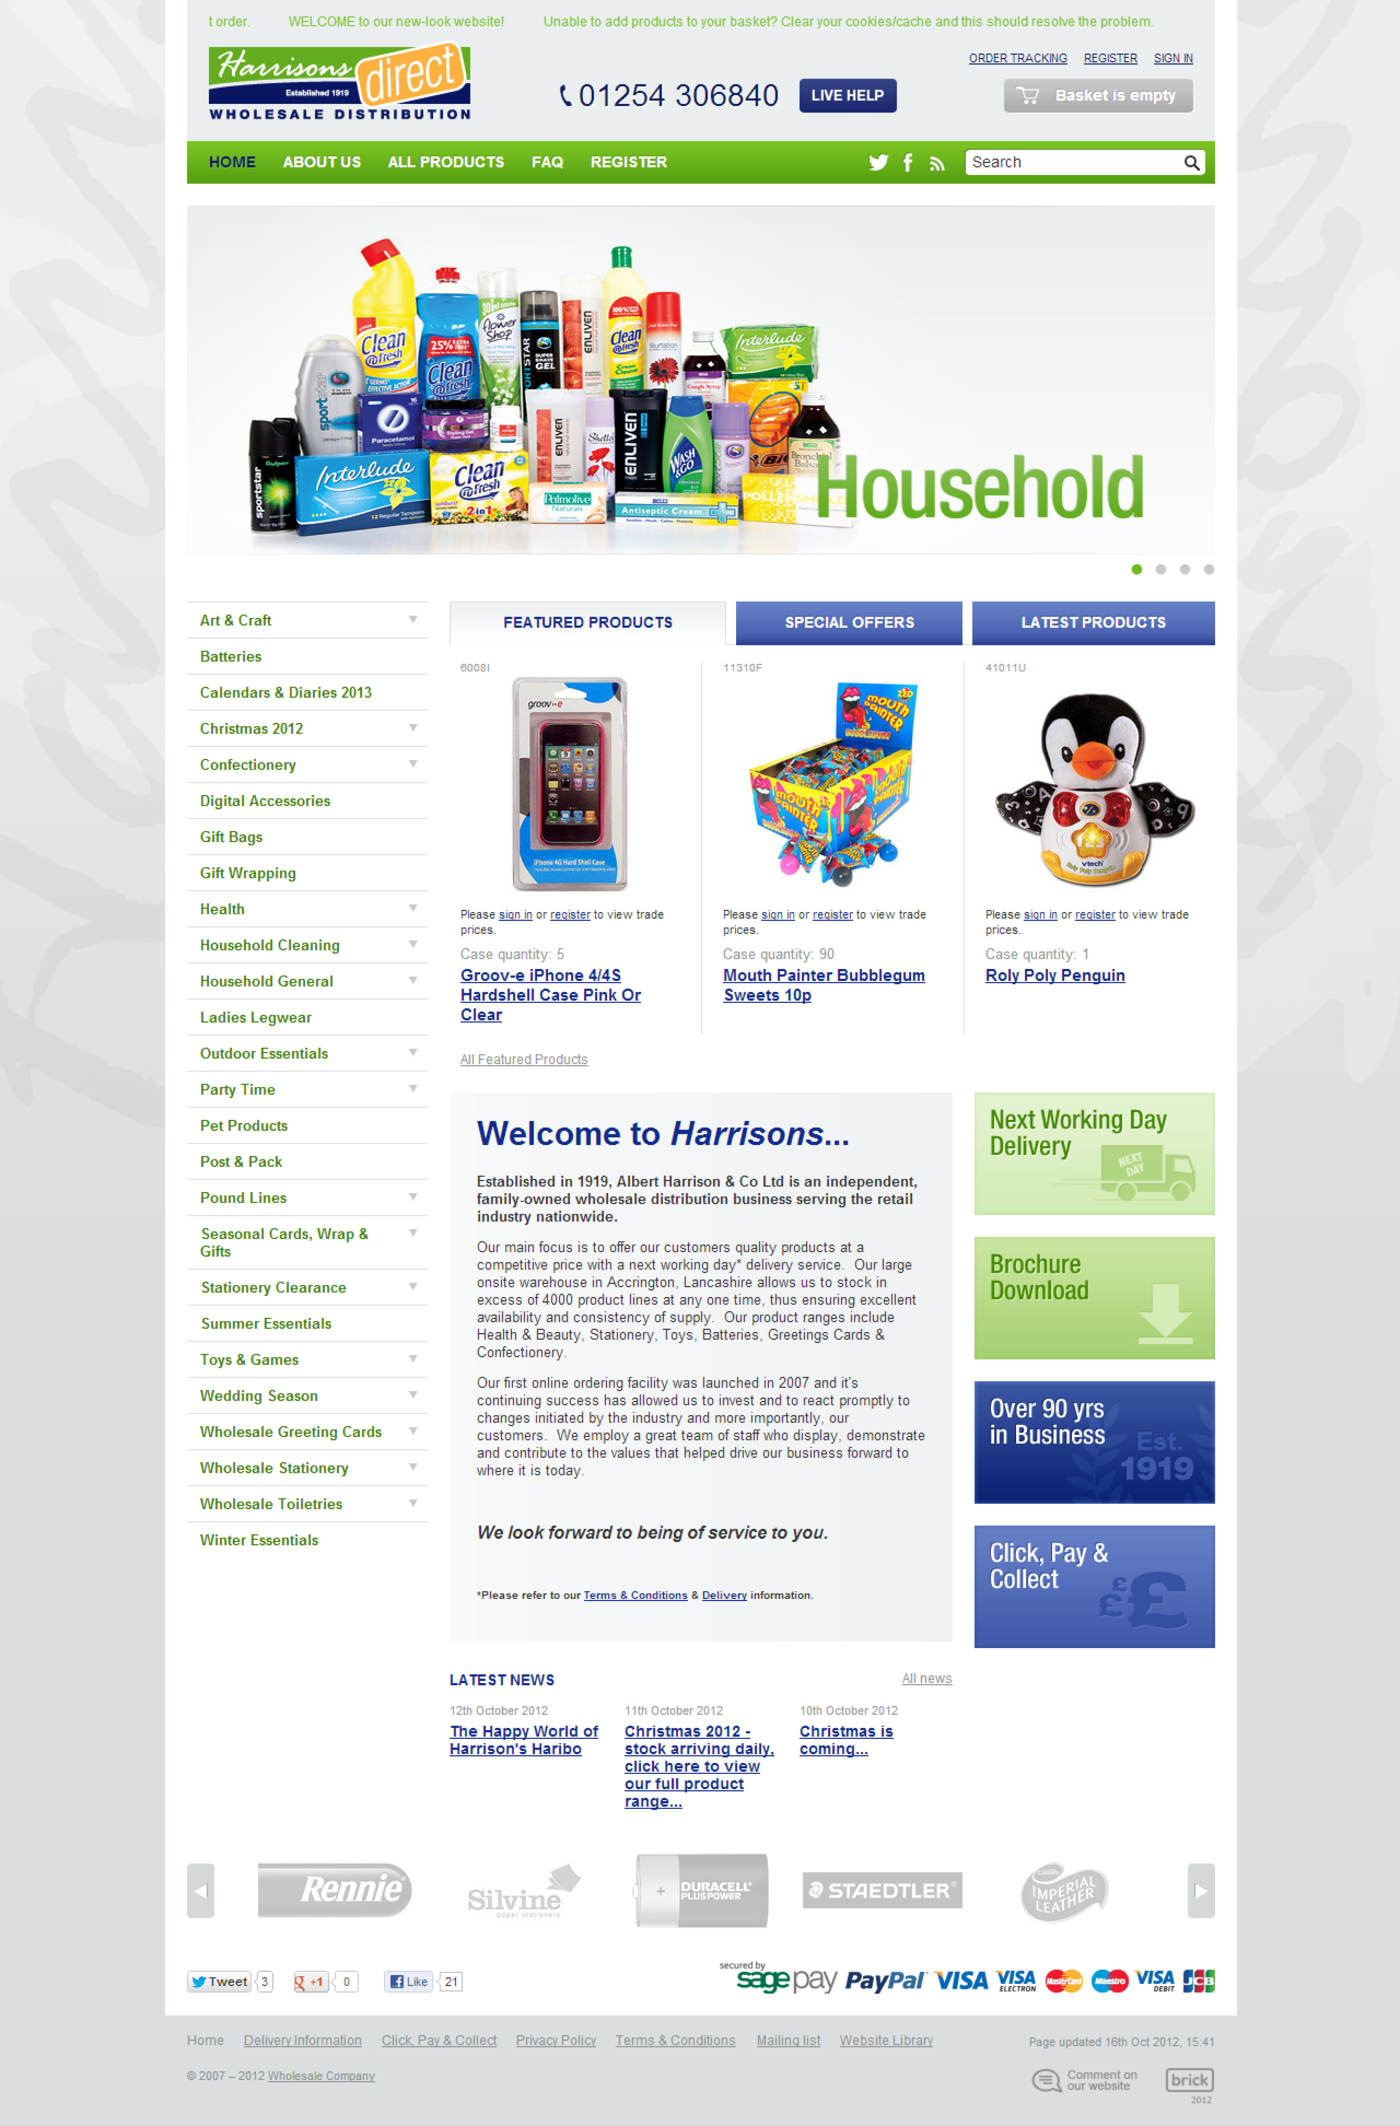 Harrisons Direct Homepage